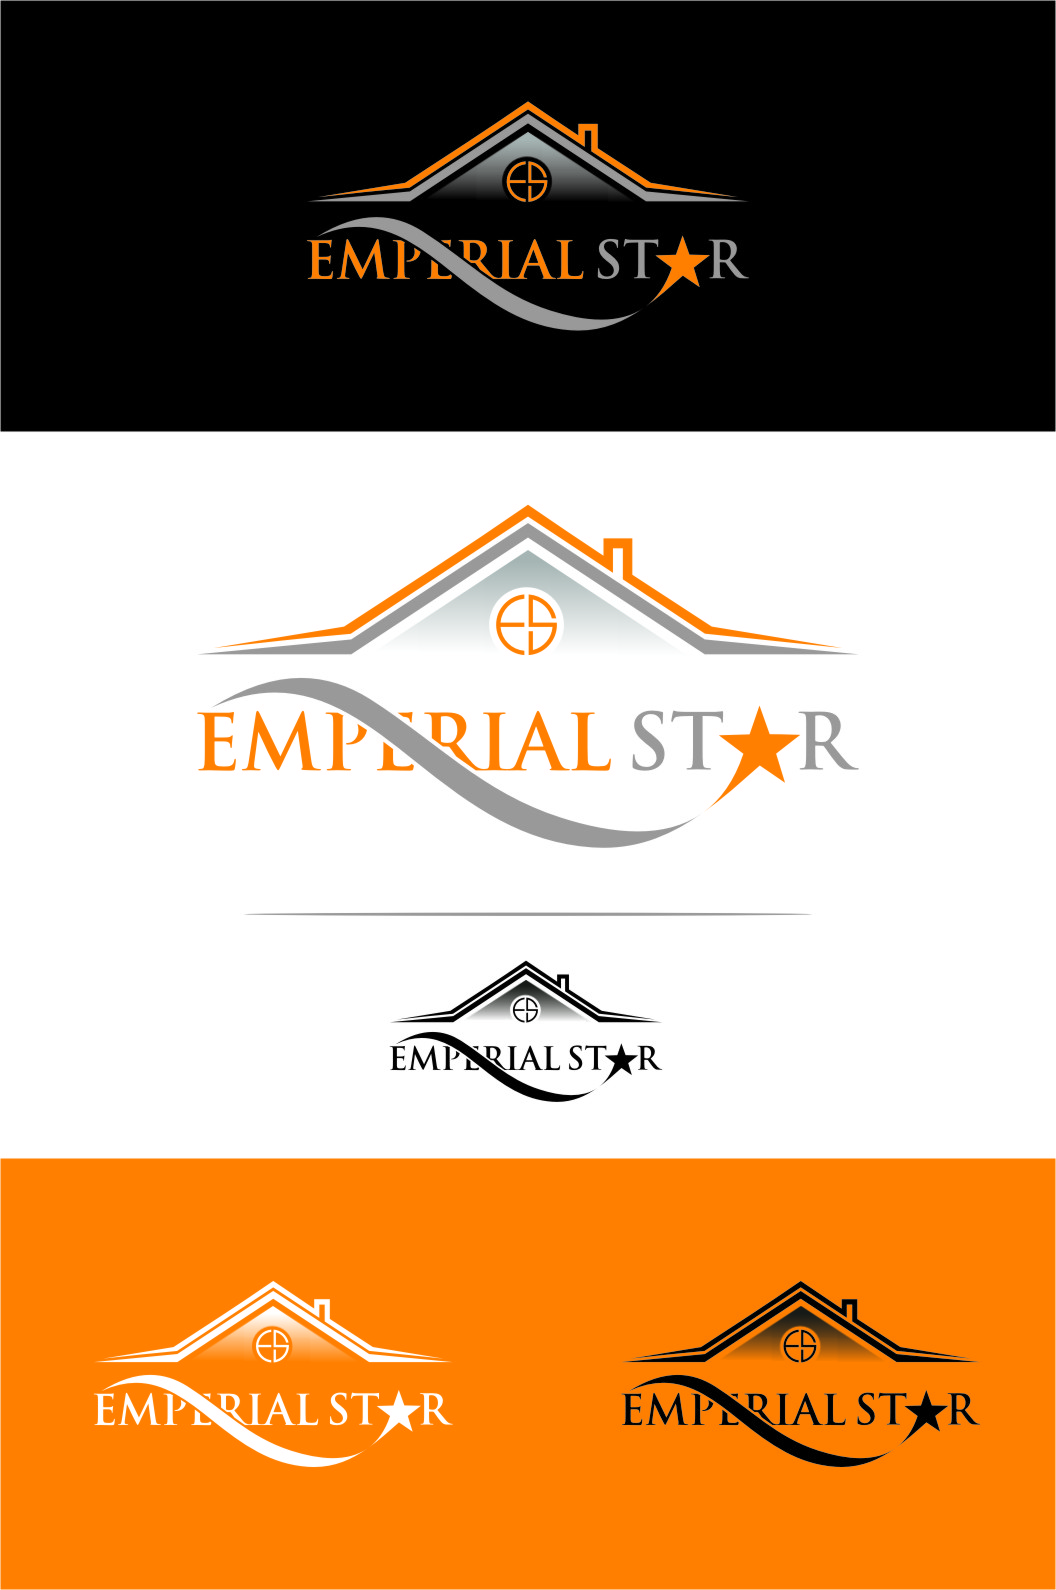 Logo Design by Ngepet_art - Entry No. 143 in the Logo Design Contest Emperial Star Logo Design.